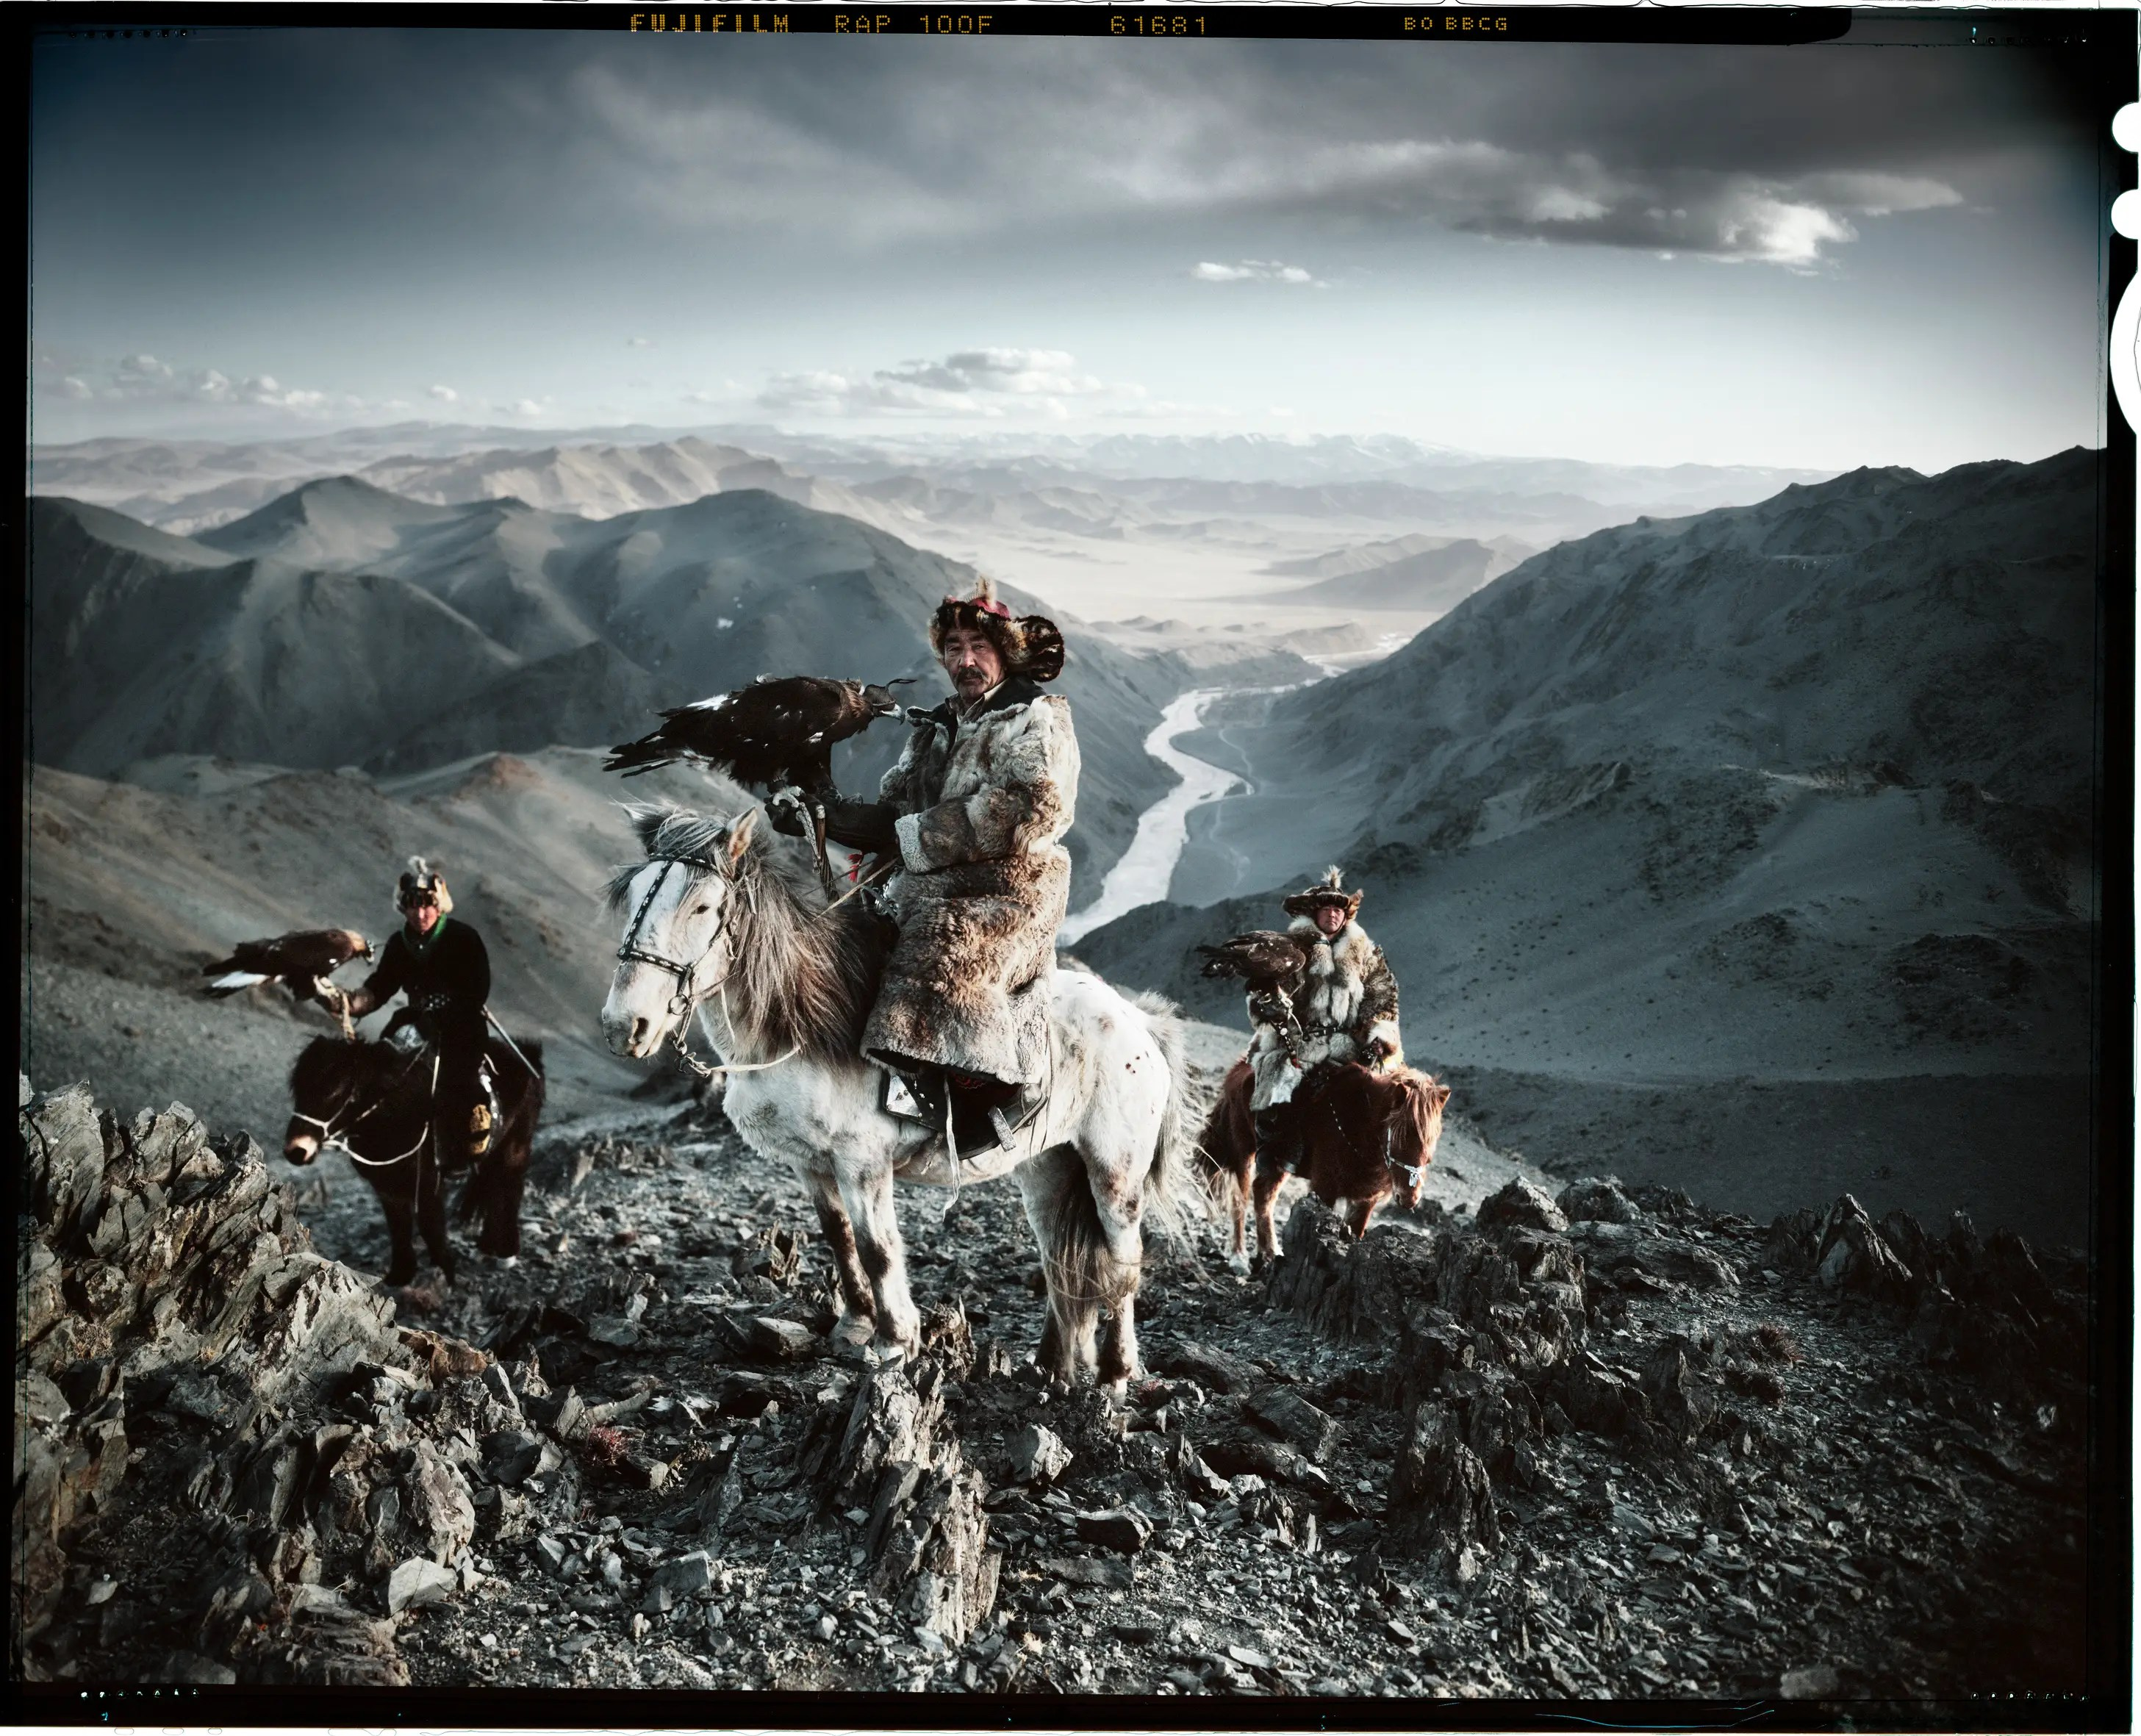 """Photographer Jimmy Nelson published a book called """"Before They Pass Away"""" showing the vanishing tribes of the world. Here are three Kazakh men using eagles to hunt."""